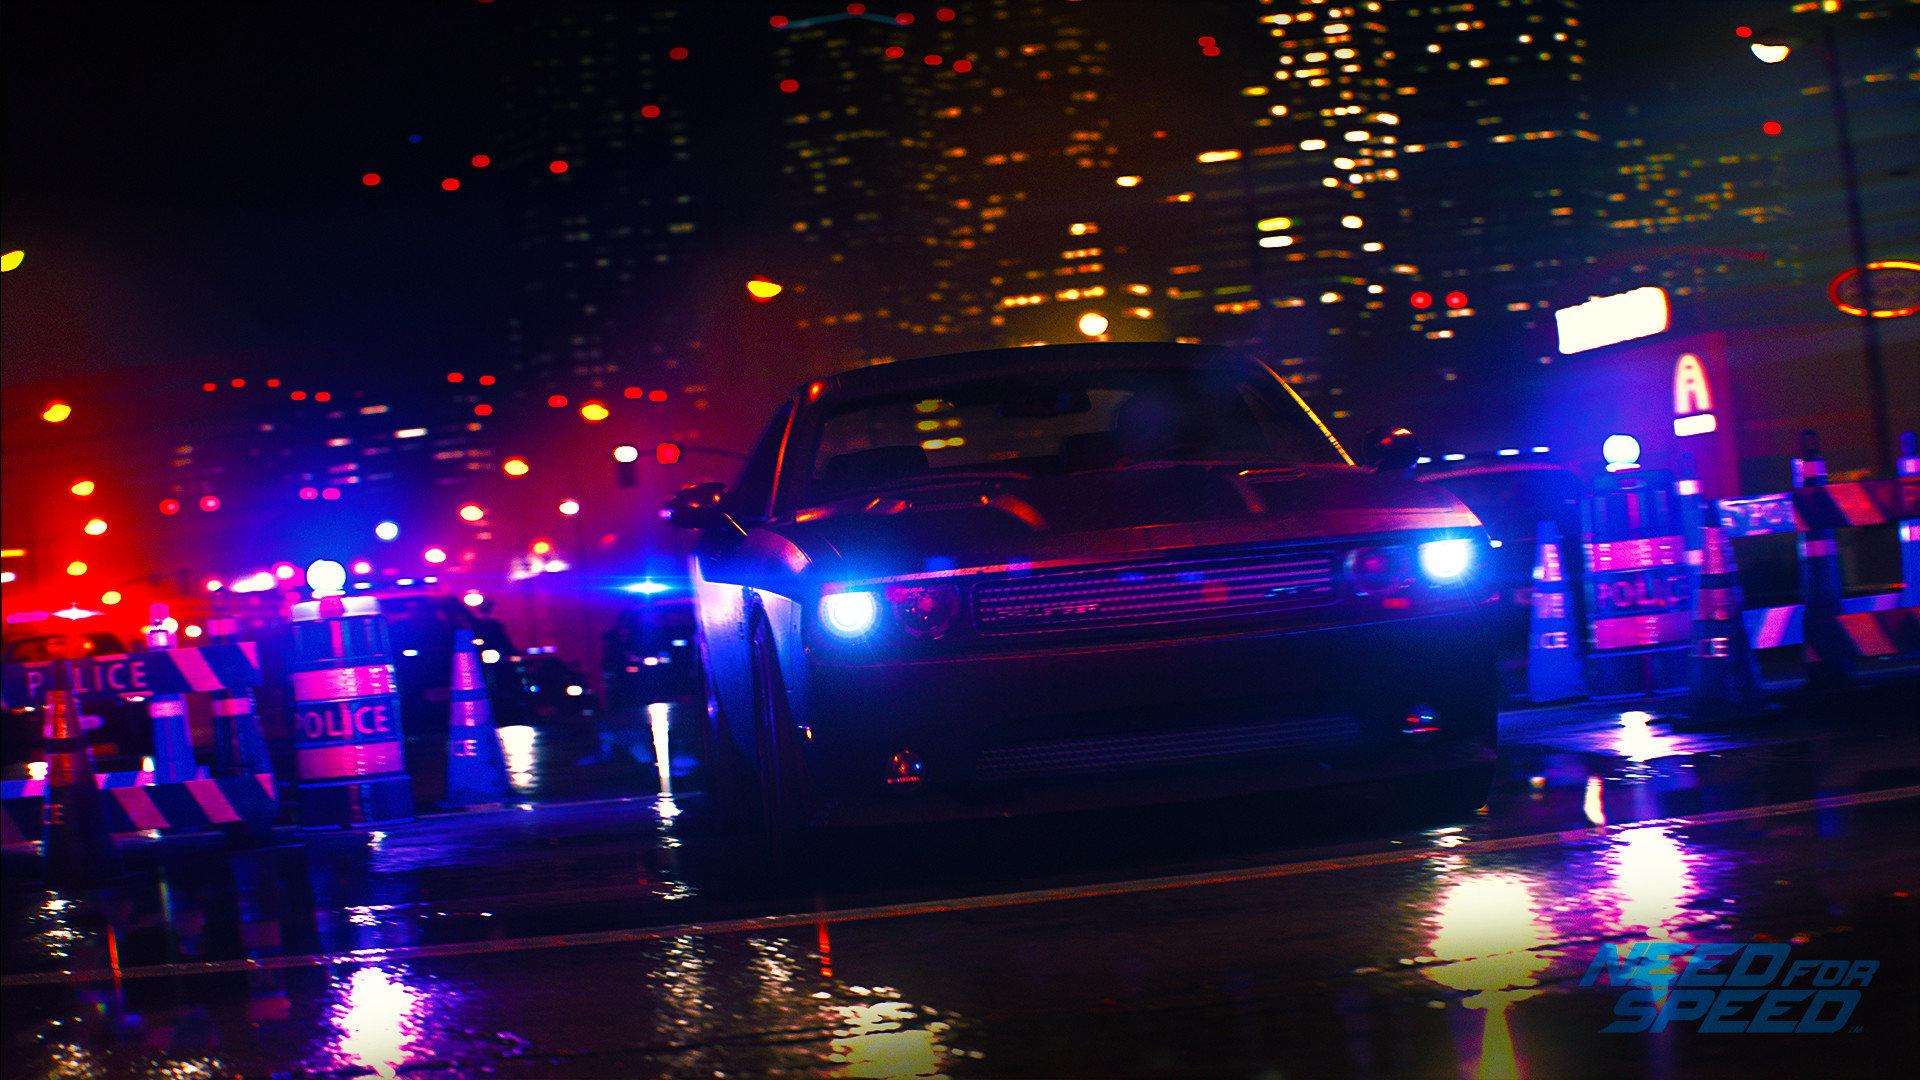 Need For Speed NFS wallpapers HD for desktop backgrounds 1920x1080